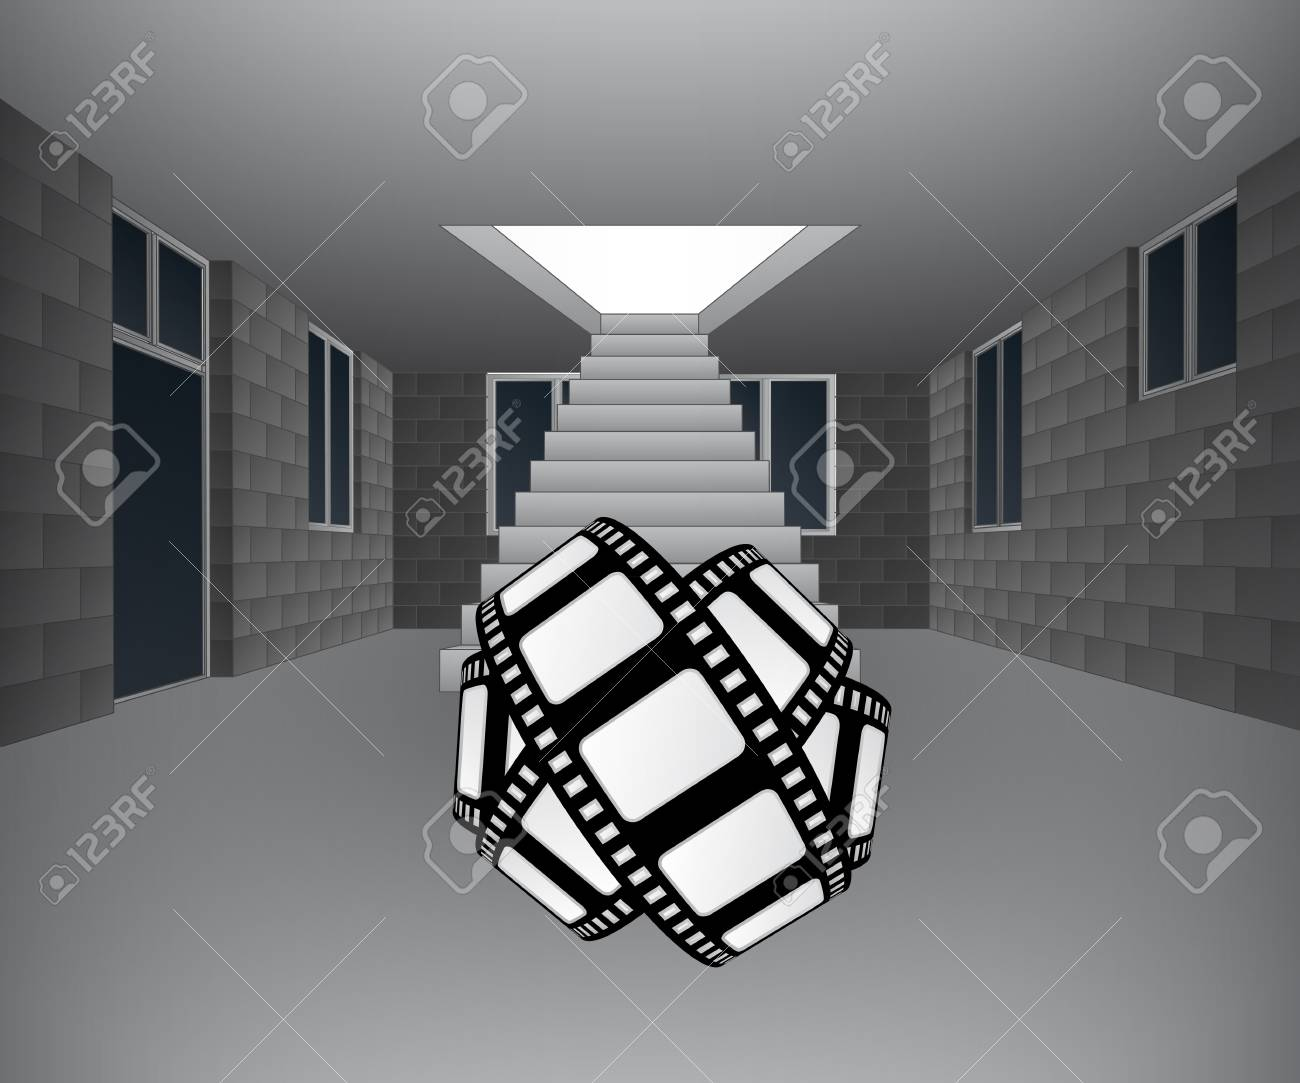 house interior with tape in front of staircase Stock Vector - 21659689